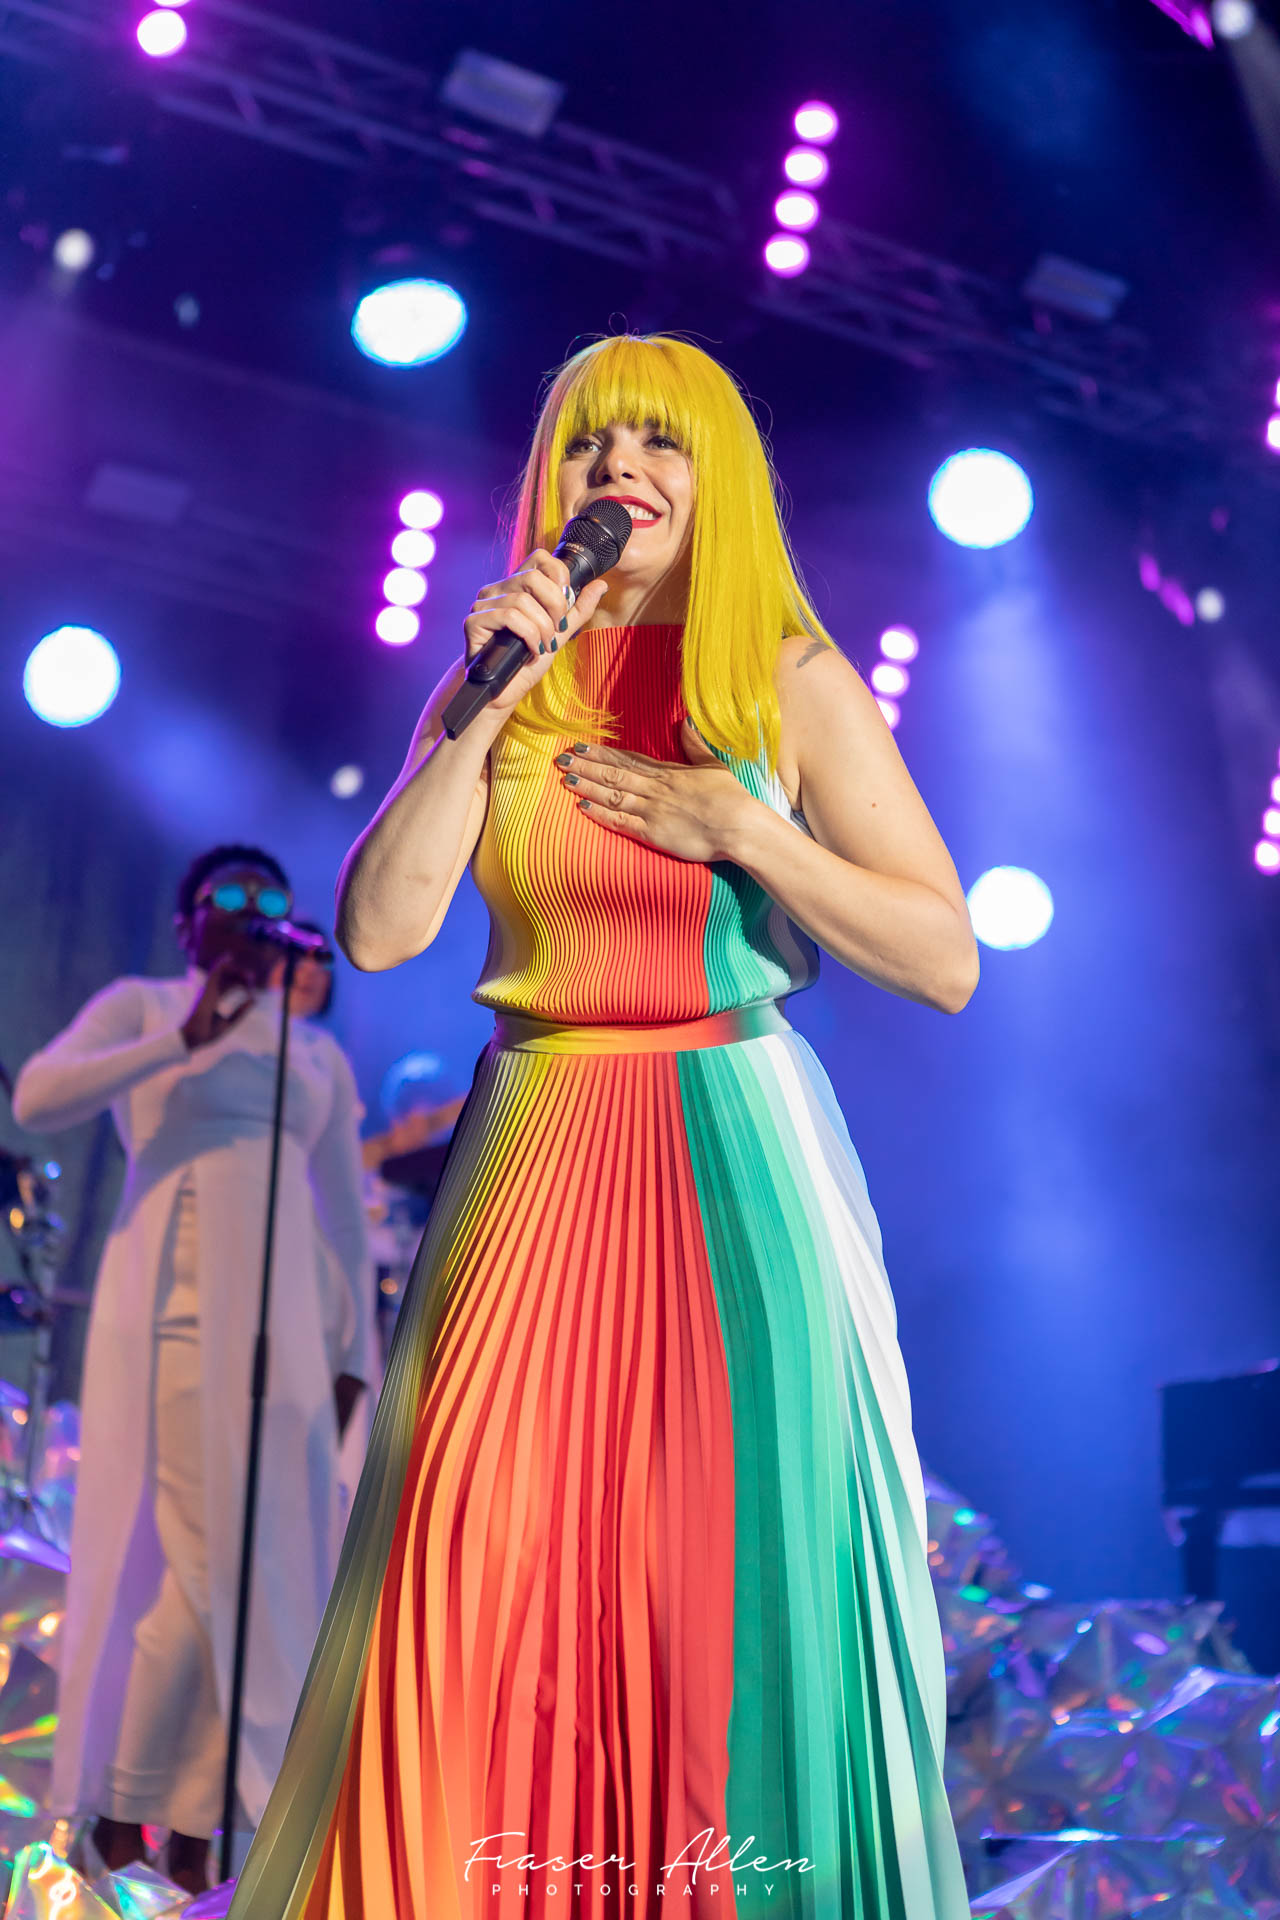 Paloma Faith at ForestLive in Bedgebury